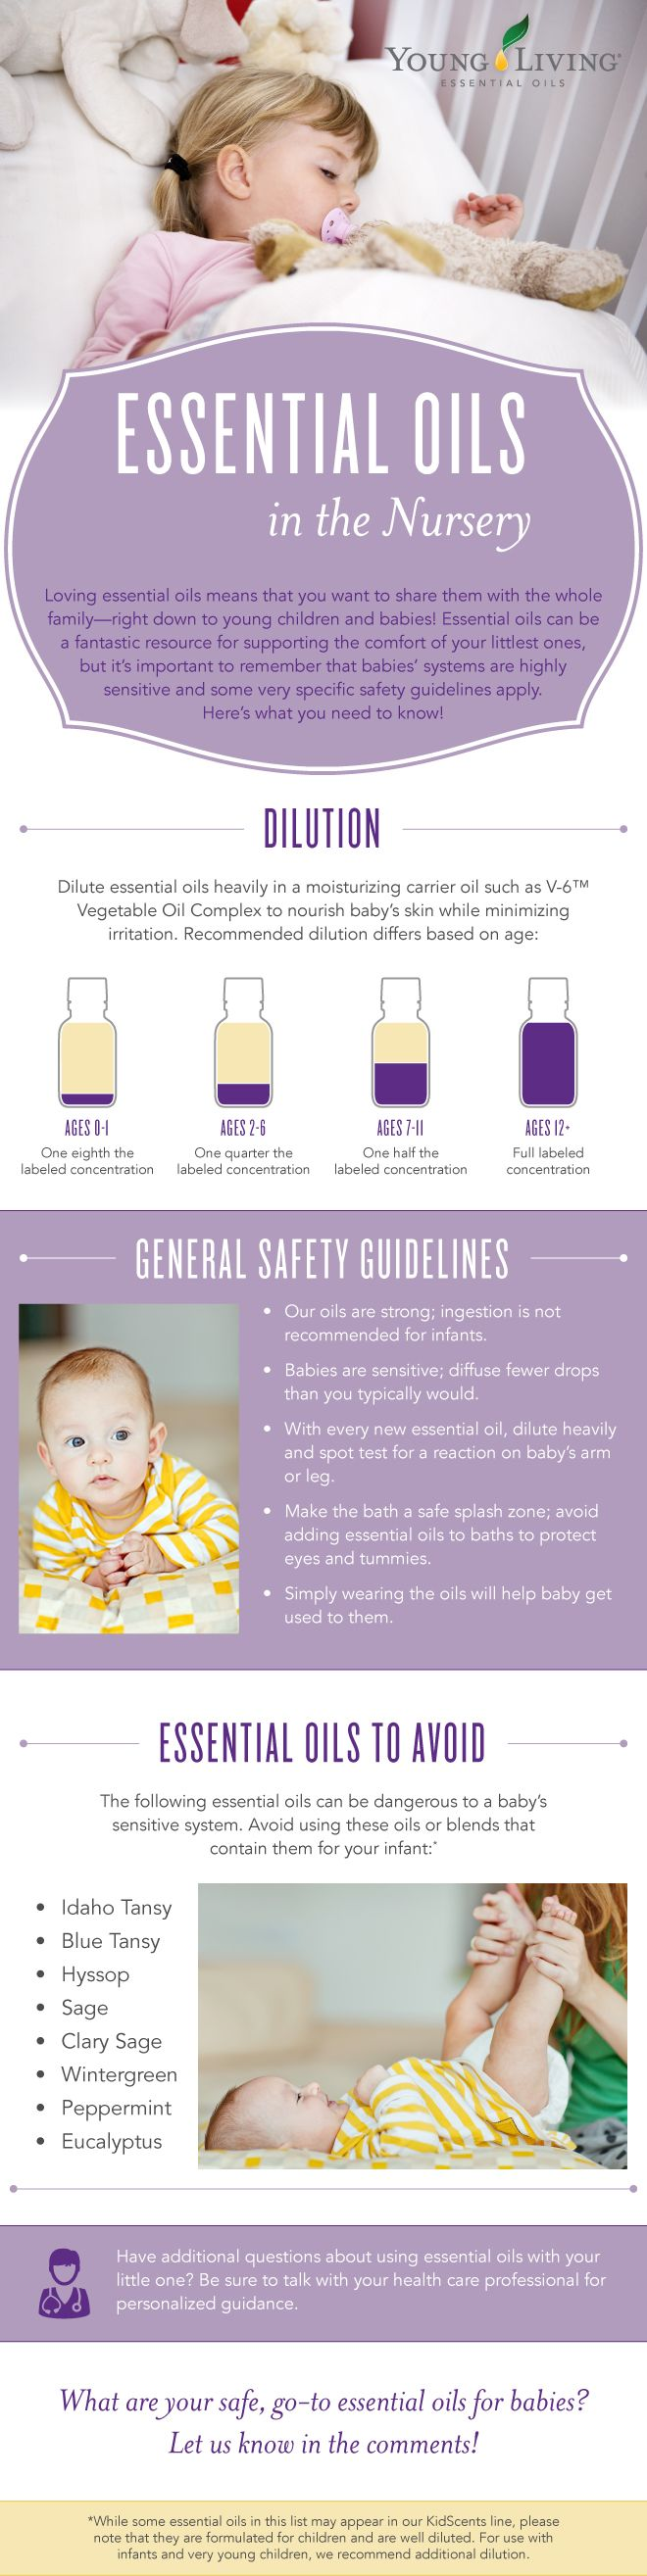 Thieves Oil Dilution 5 Tips For Safely Using Essential Oils With Children Oil